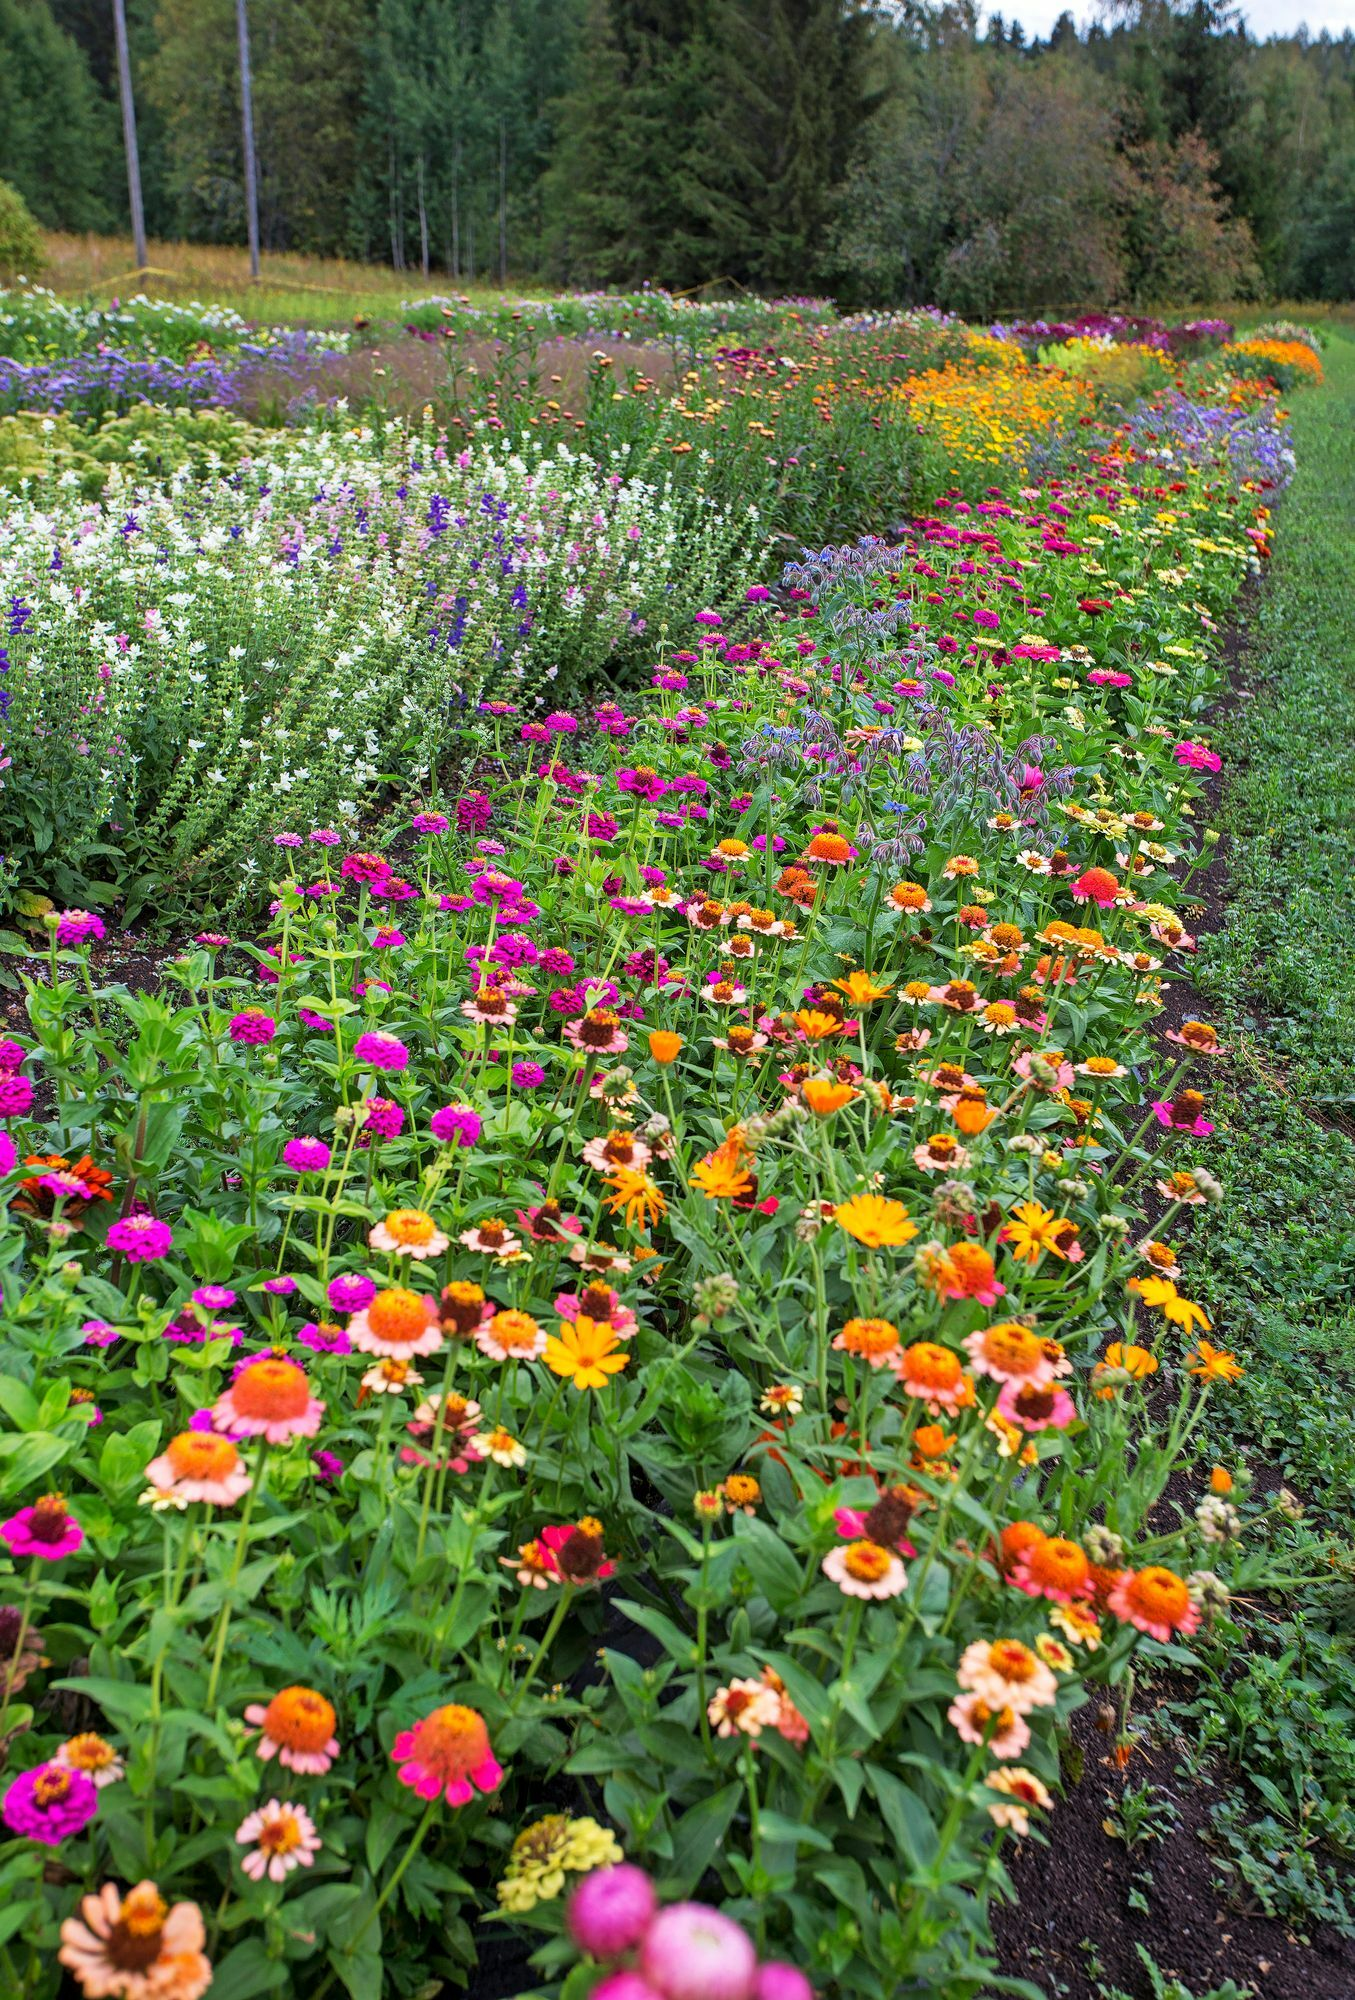 The flower field is at its best in late summer.  In the foreground bloom Tsinnia 'Zinderella Peach' and buttercups.